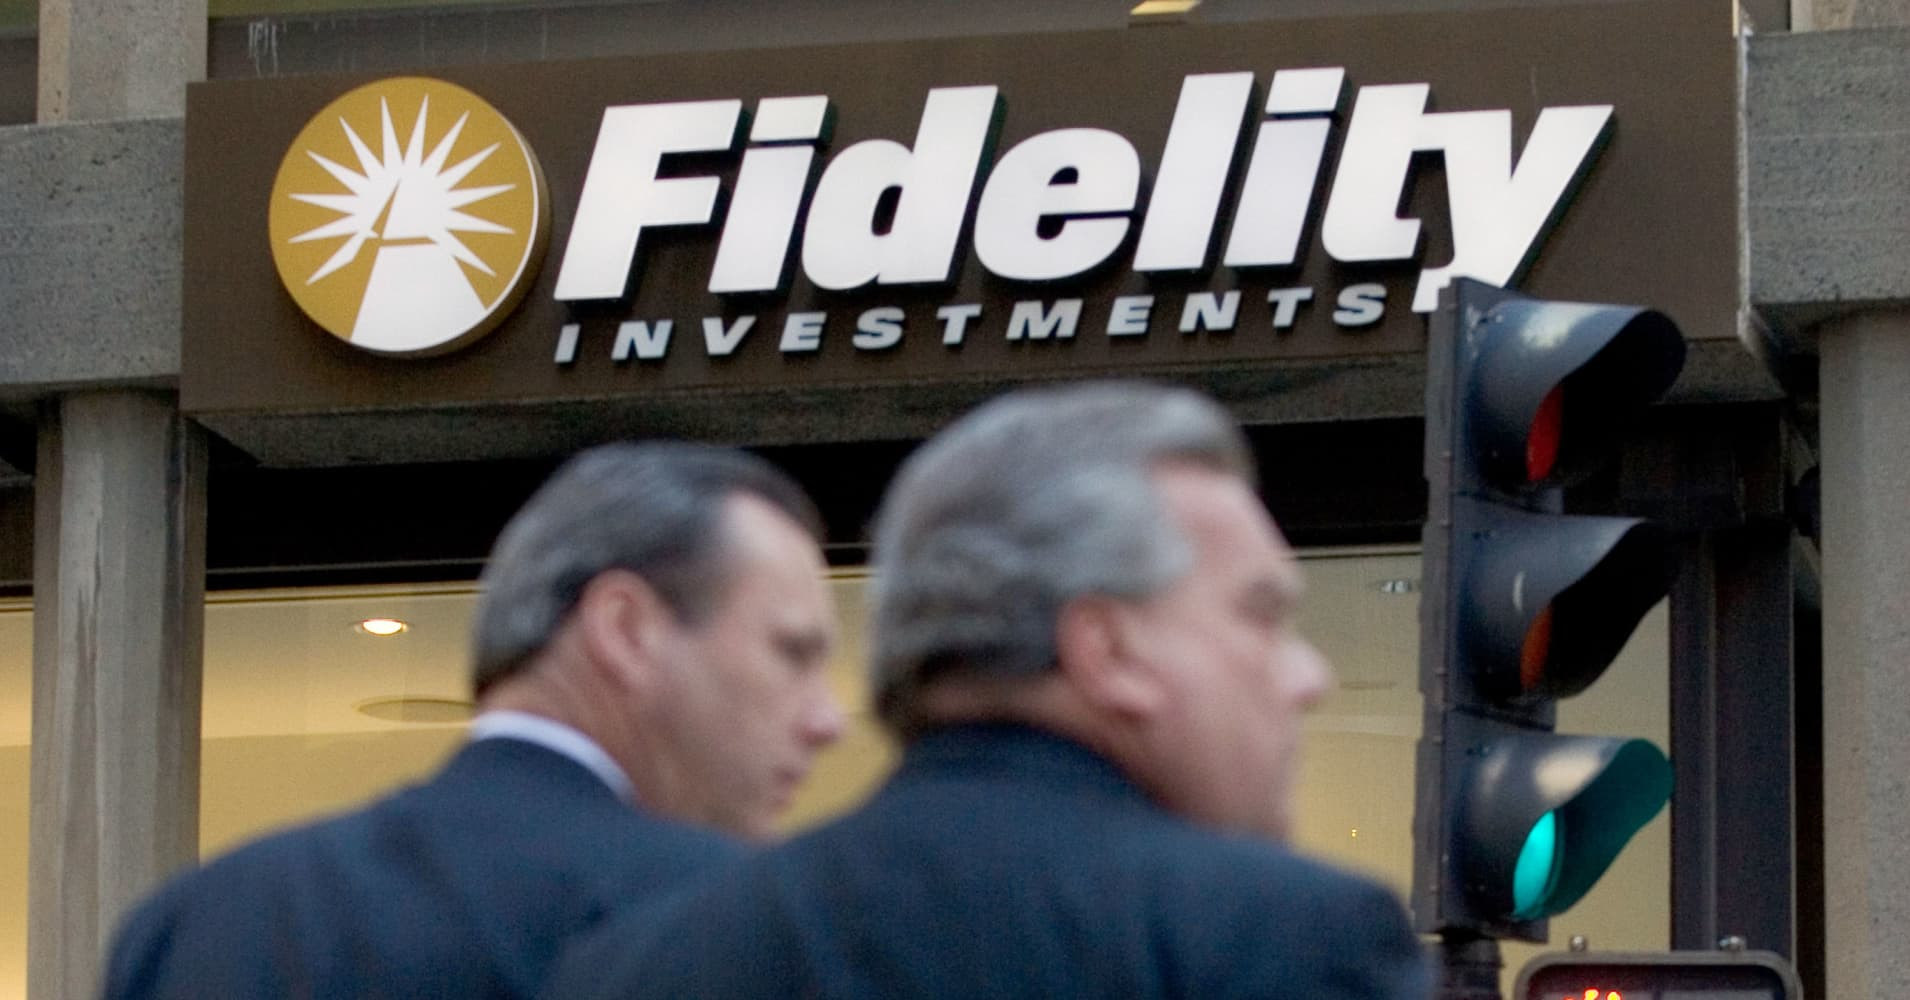 Fidelity just made it easier for hedge funds and other pros to invest in cryptocurrencies